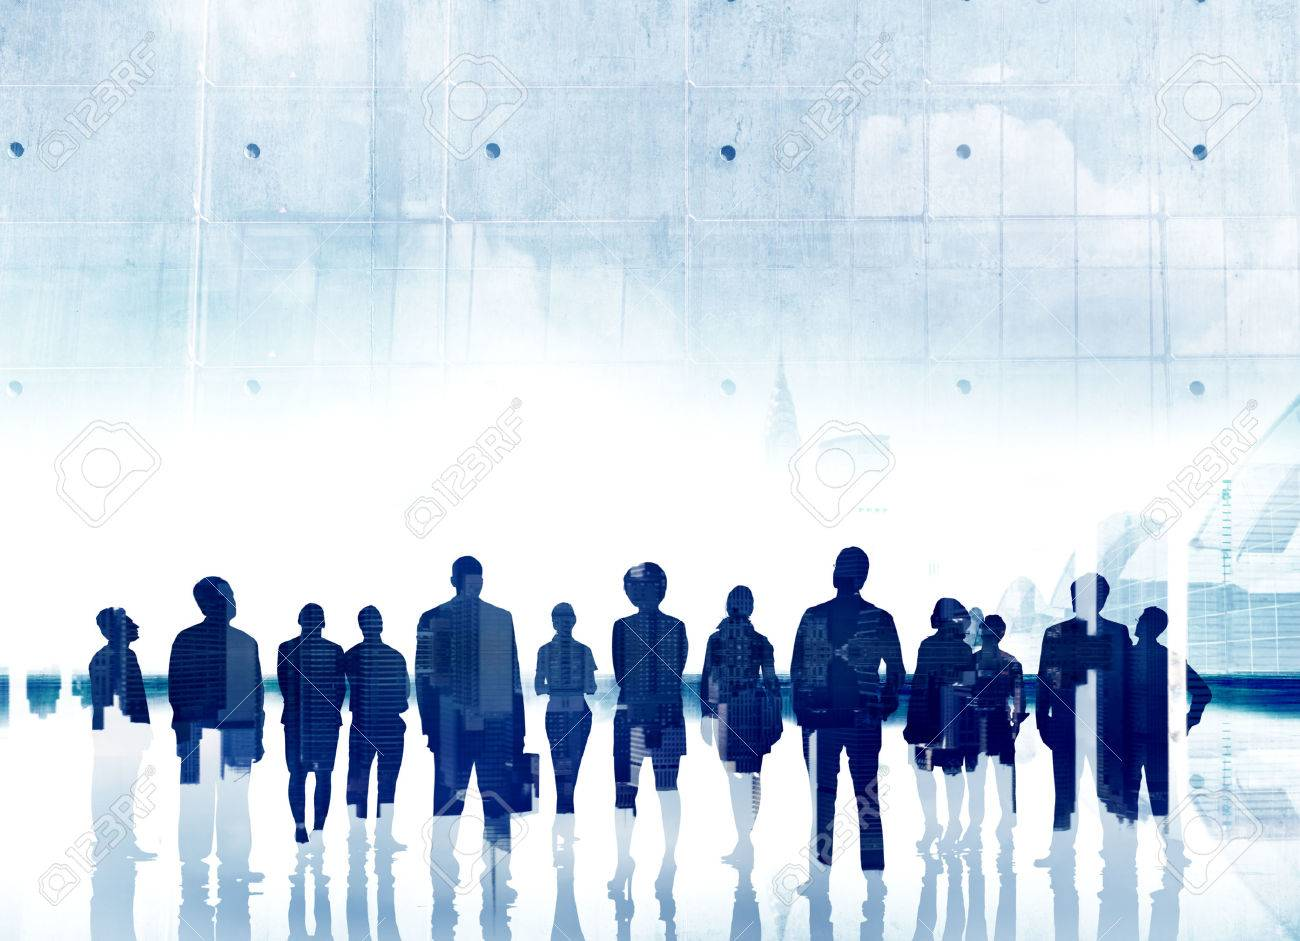 business people aspiration goals success professional corporate business people aspiration goals success professional corporate concept stock photo 41267172